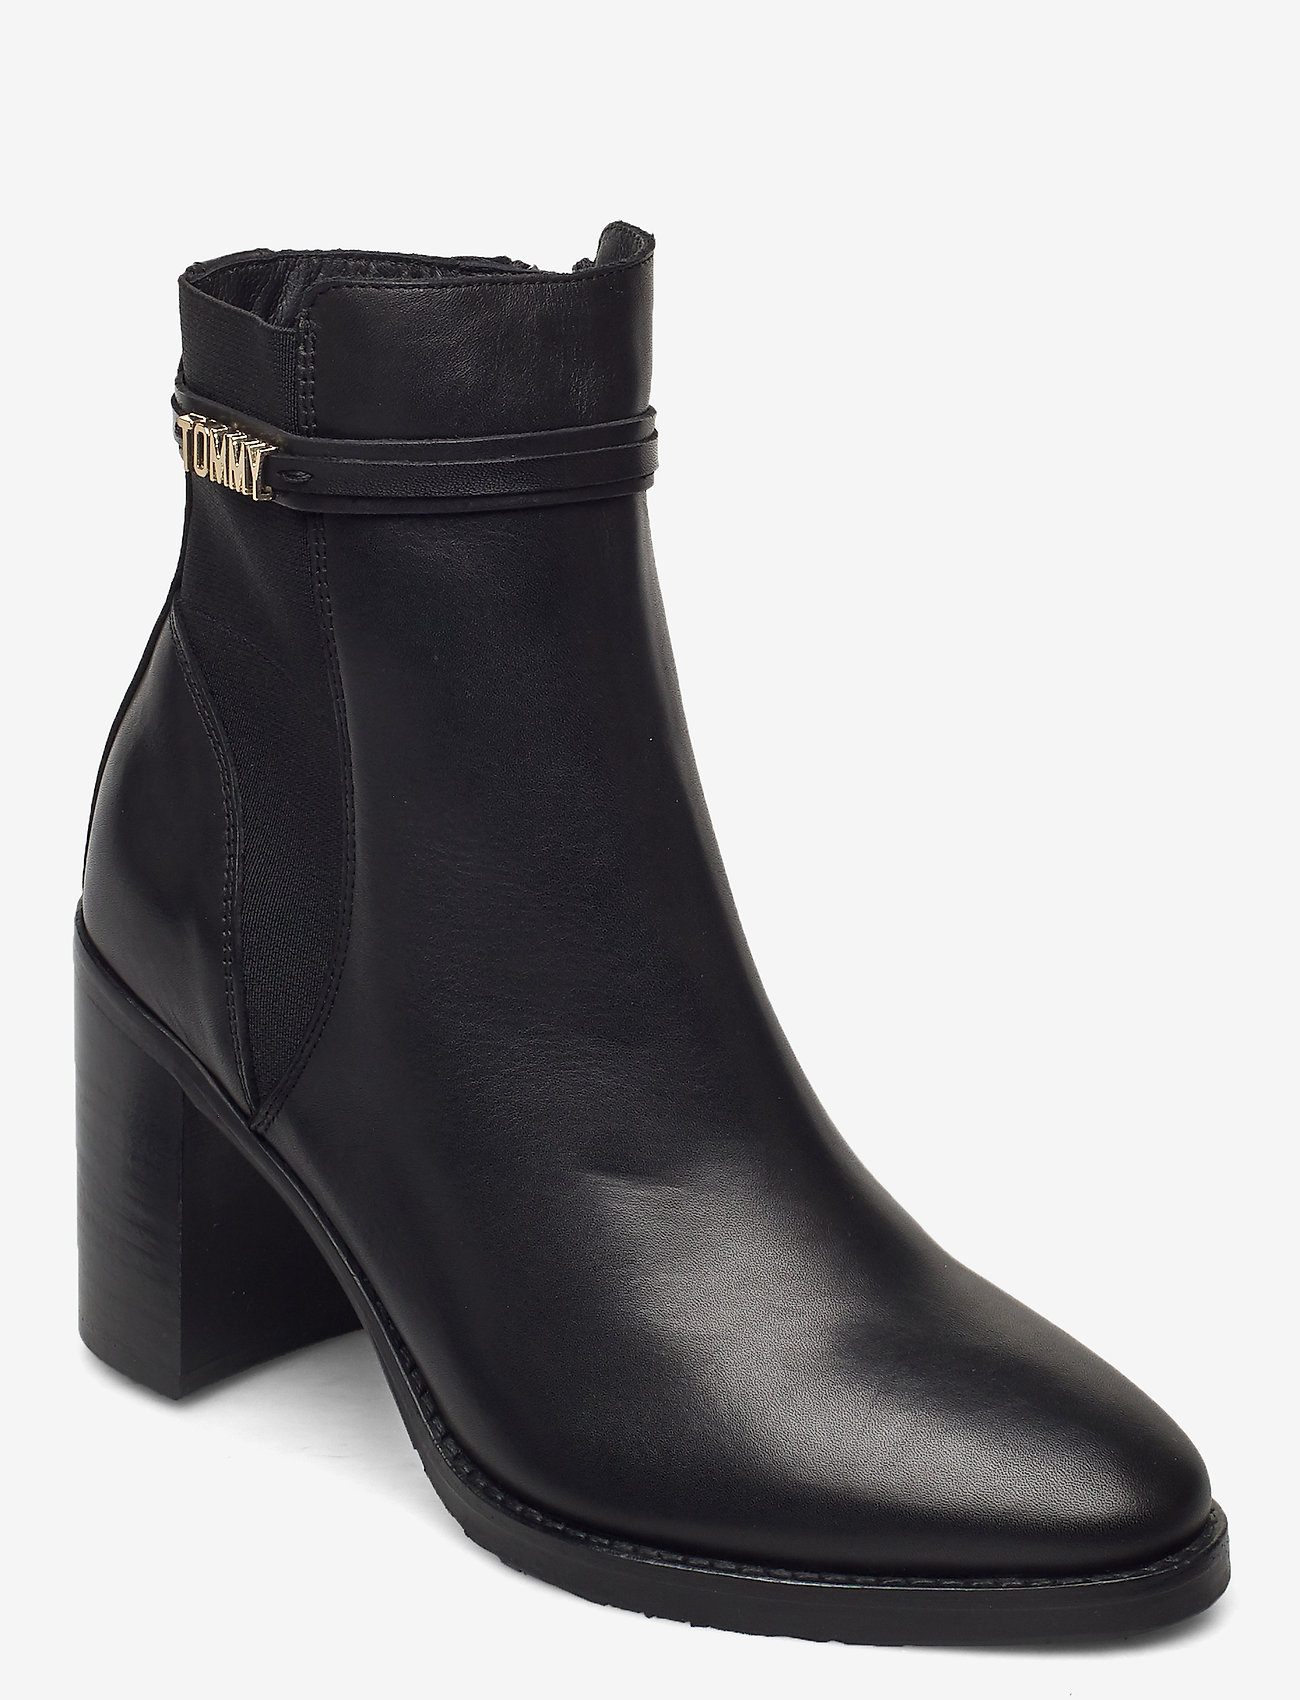 Tommy Hilfiger - BLOCK BRANDING HIGH HEEL BOOT - heeled ankle boots - black - 0